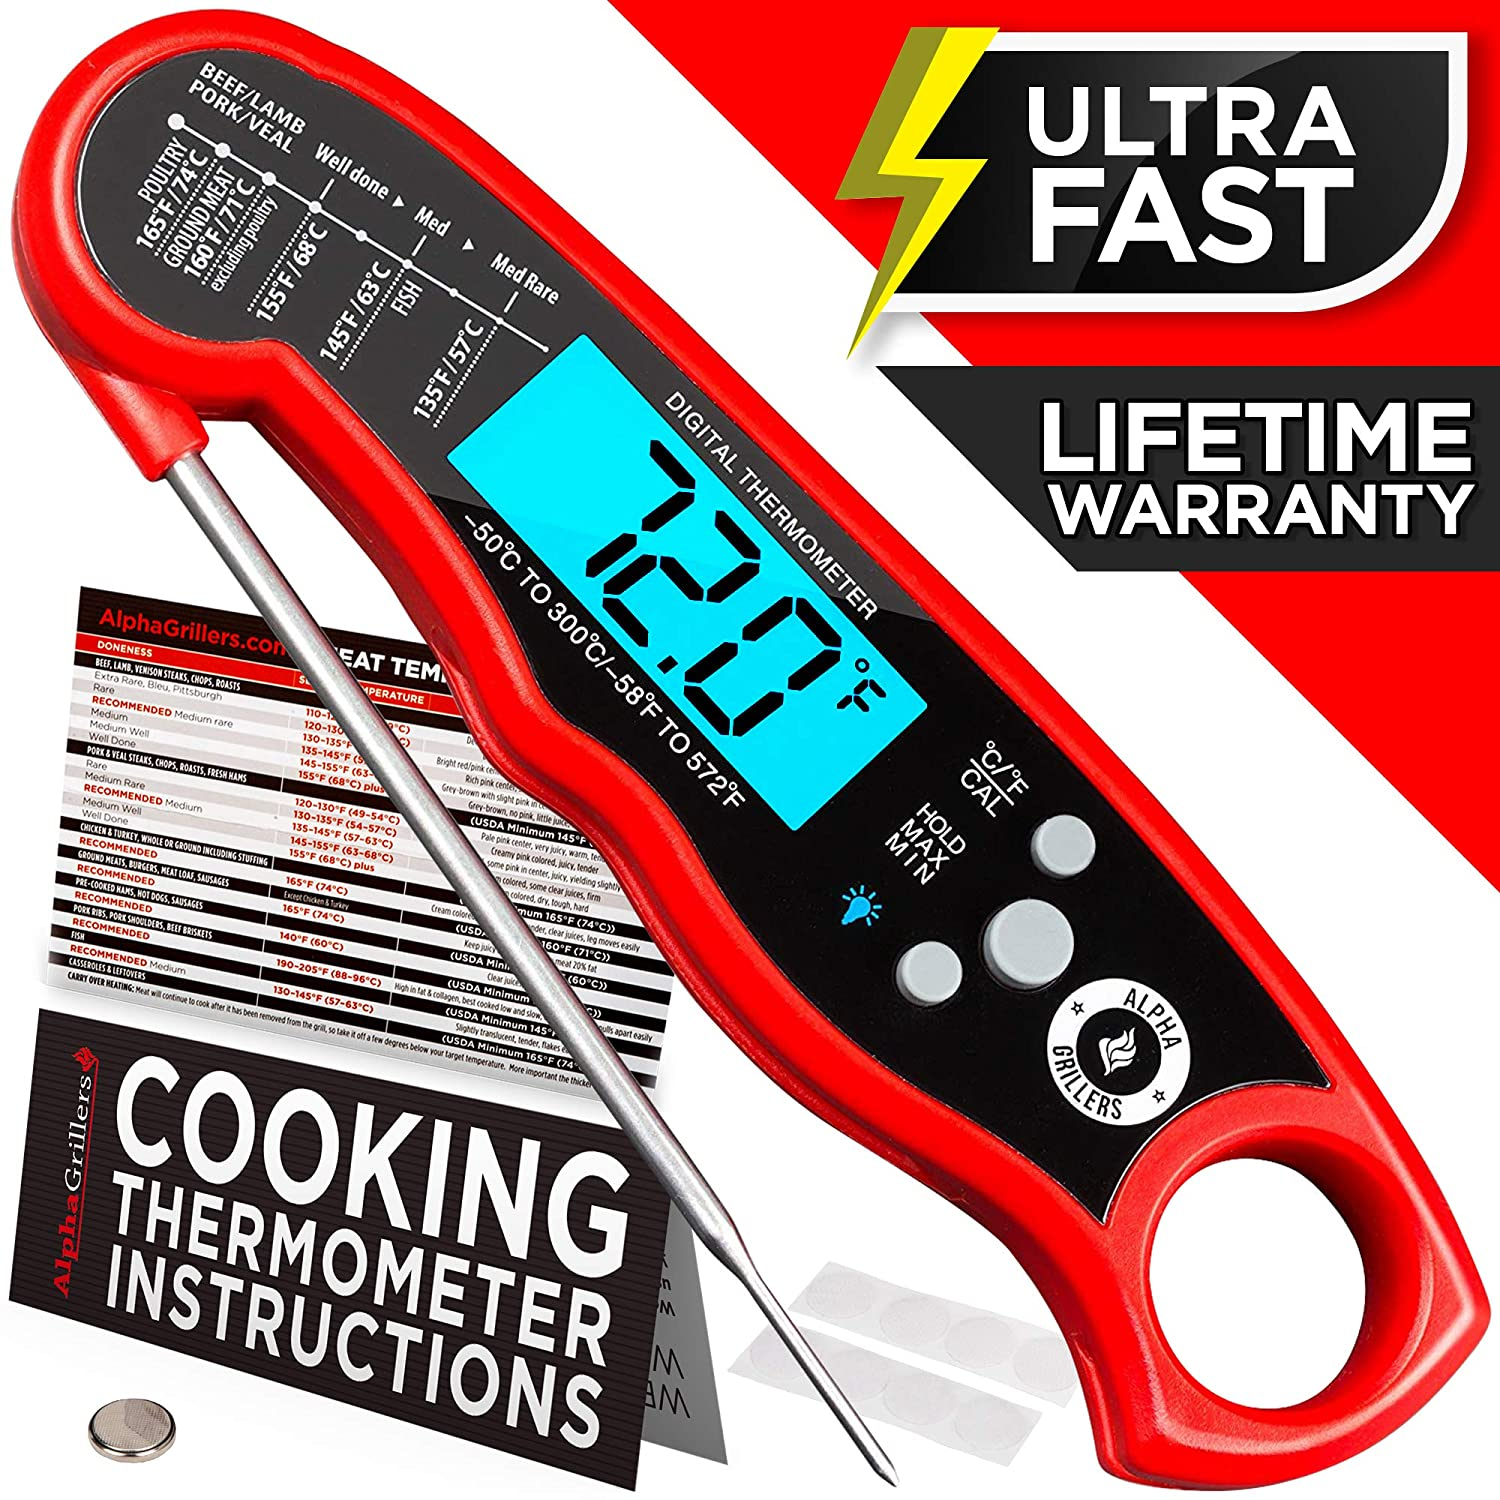 Alpha Grillers Instant Read Meat Thermometer for Grill and Cooking. Upgraded with Backlight and Waterproof Body. Best Ultra Fast Digital Kitchen ...